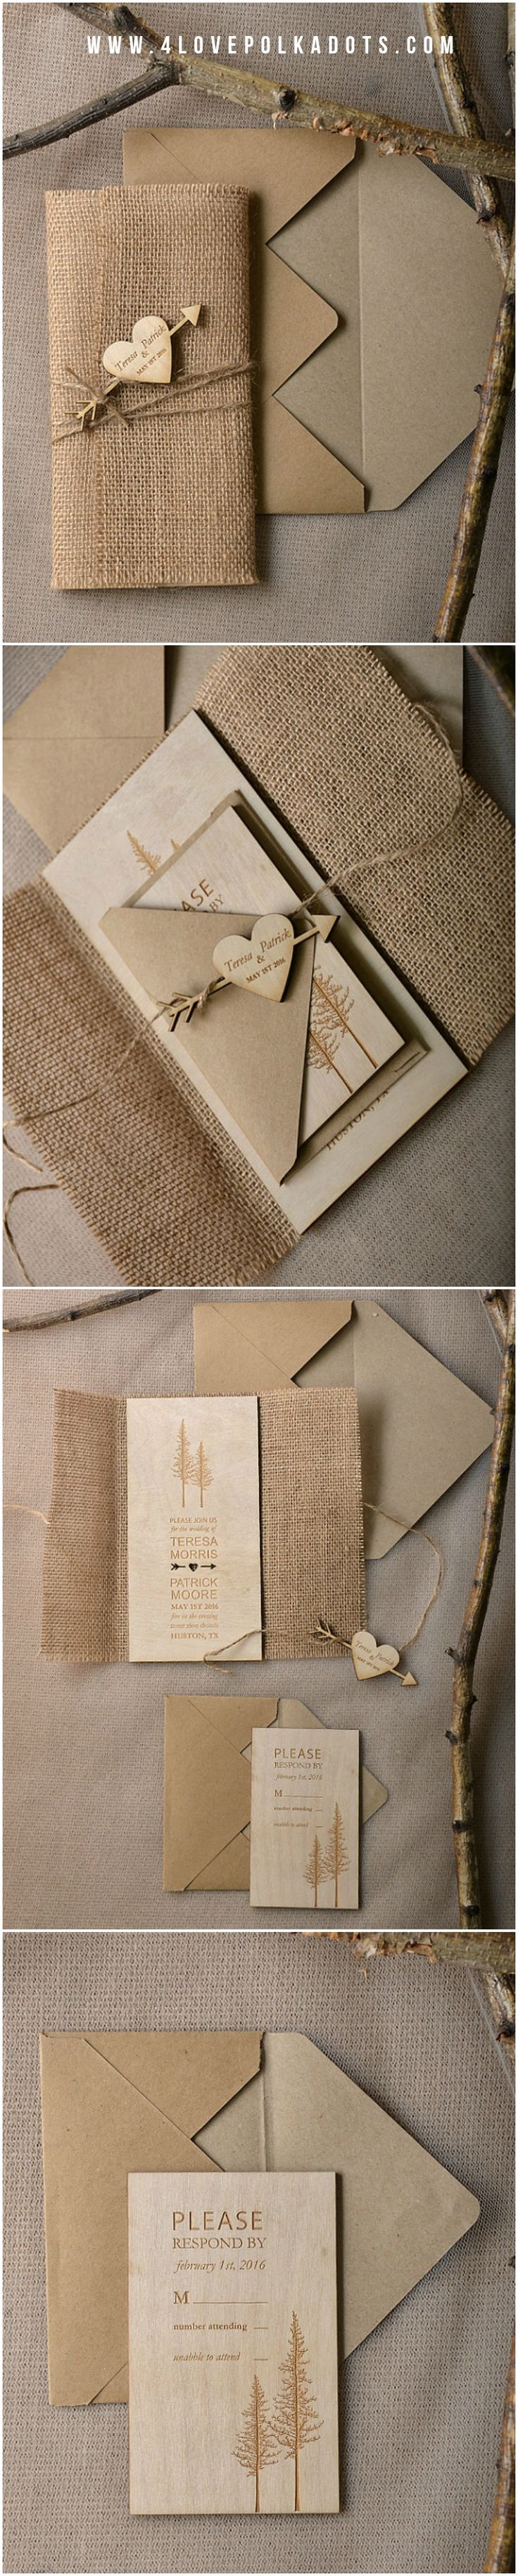 Wooden Wedding Invitations - burlap wrapping, heart tag, tree engraving #realwood #wood #rustic #forest #woodland #weddingideas #fairytale #nature